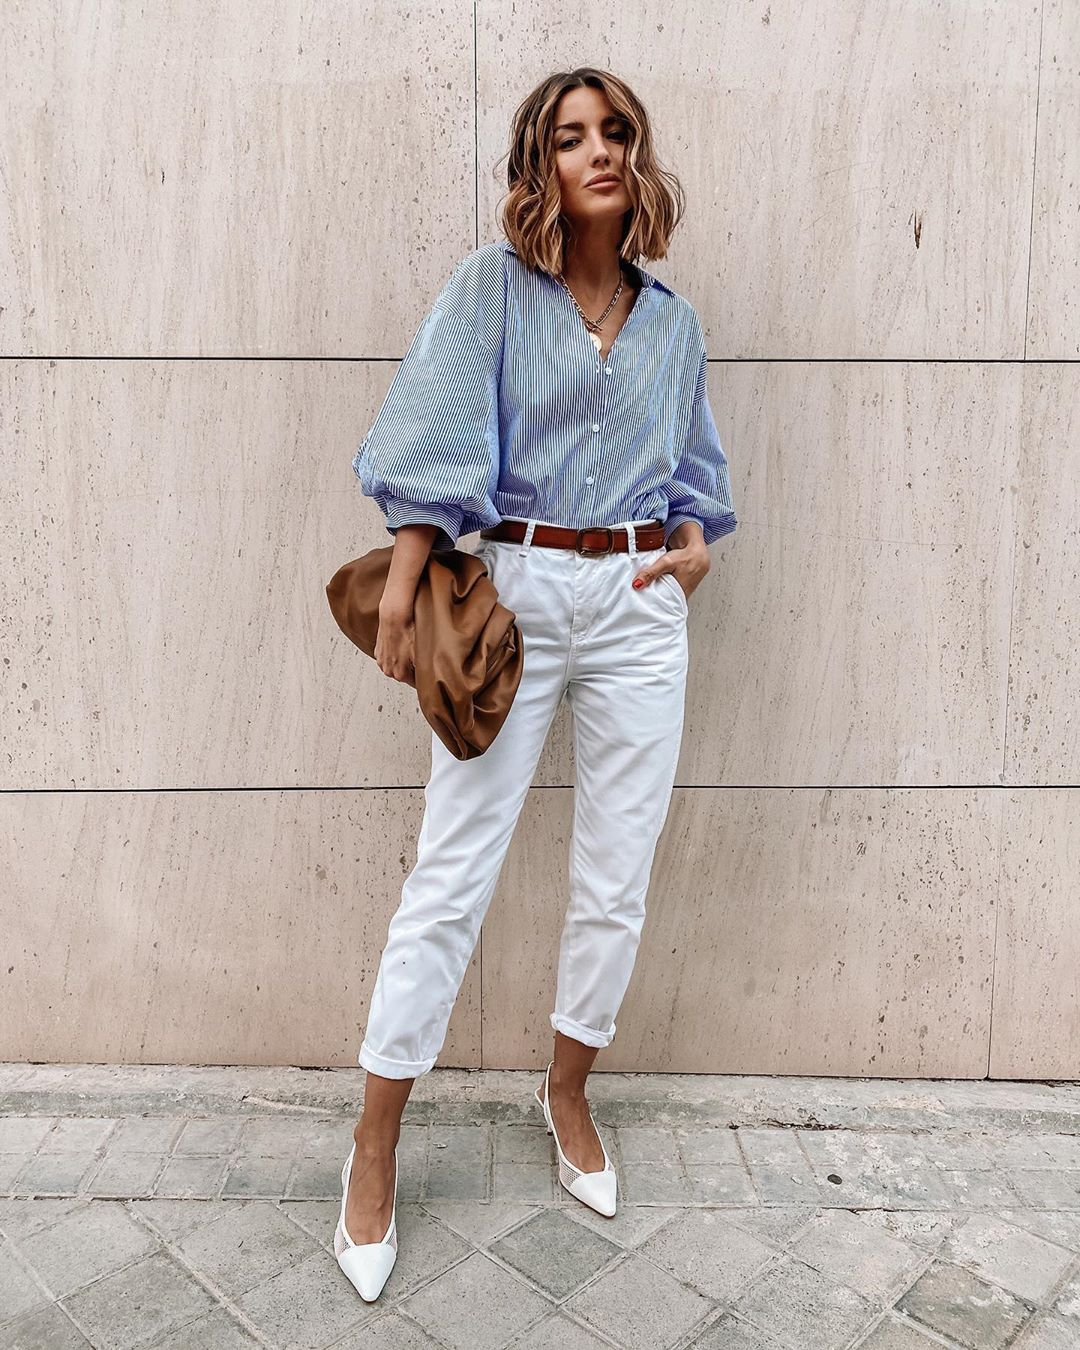 We Love This Simple, Classic Outfit Idea